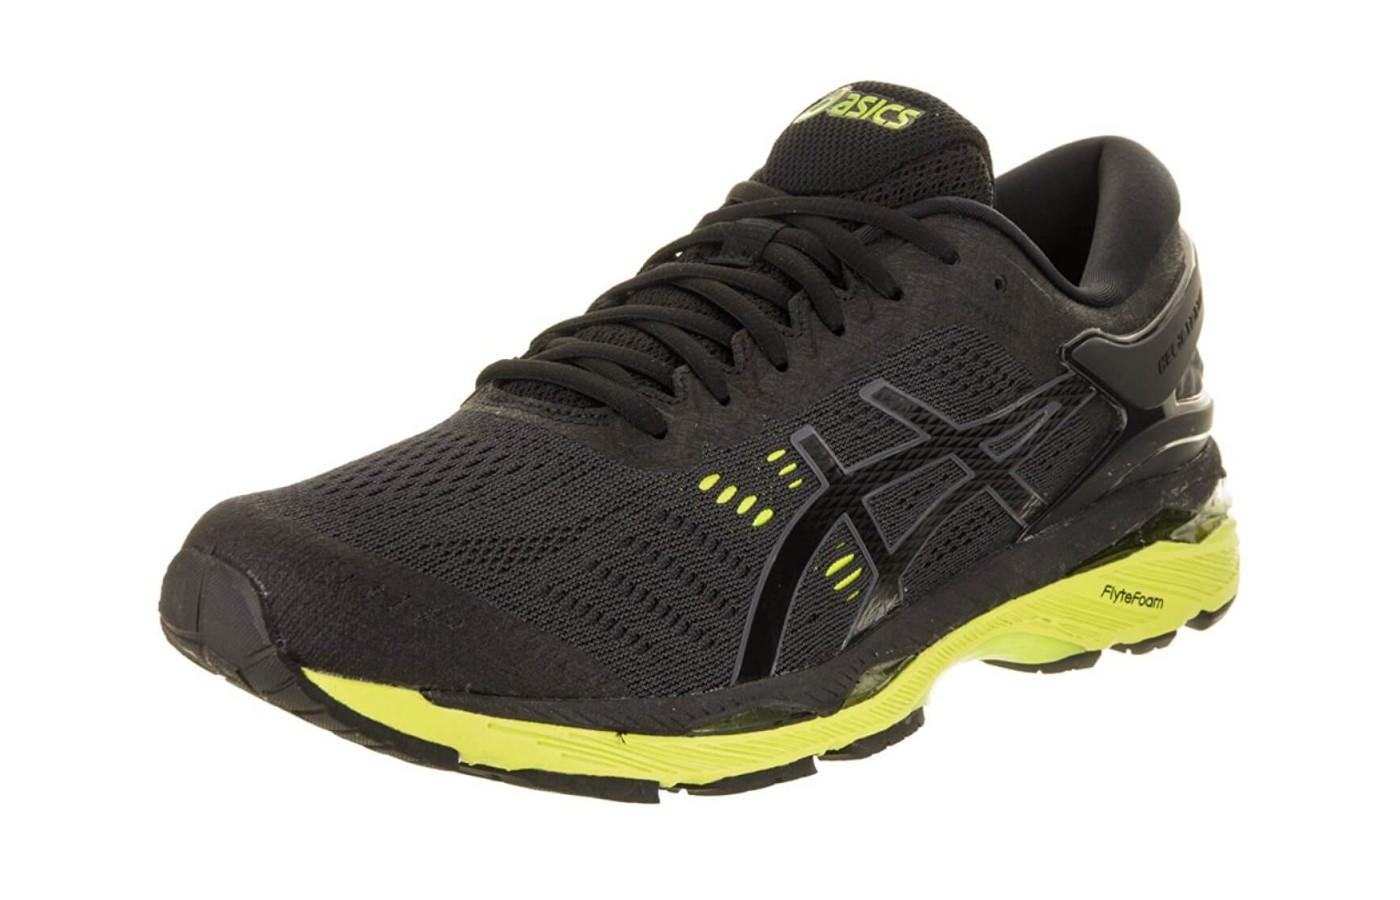 the Asics Gel Kayano 24 is a stability shoe